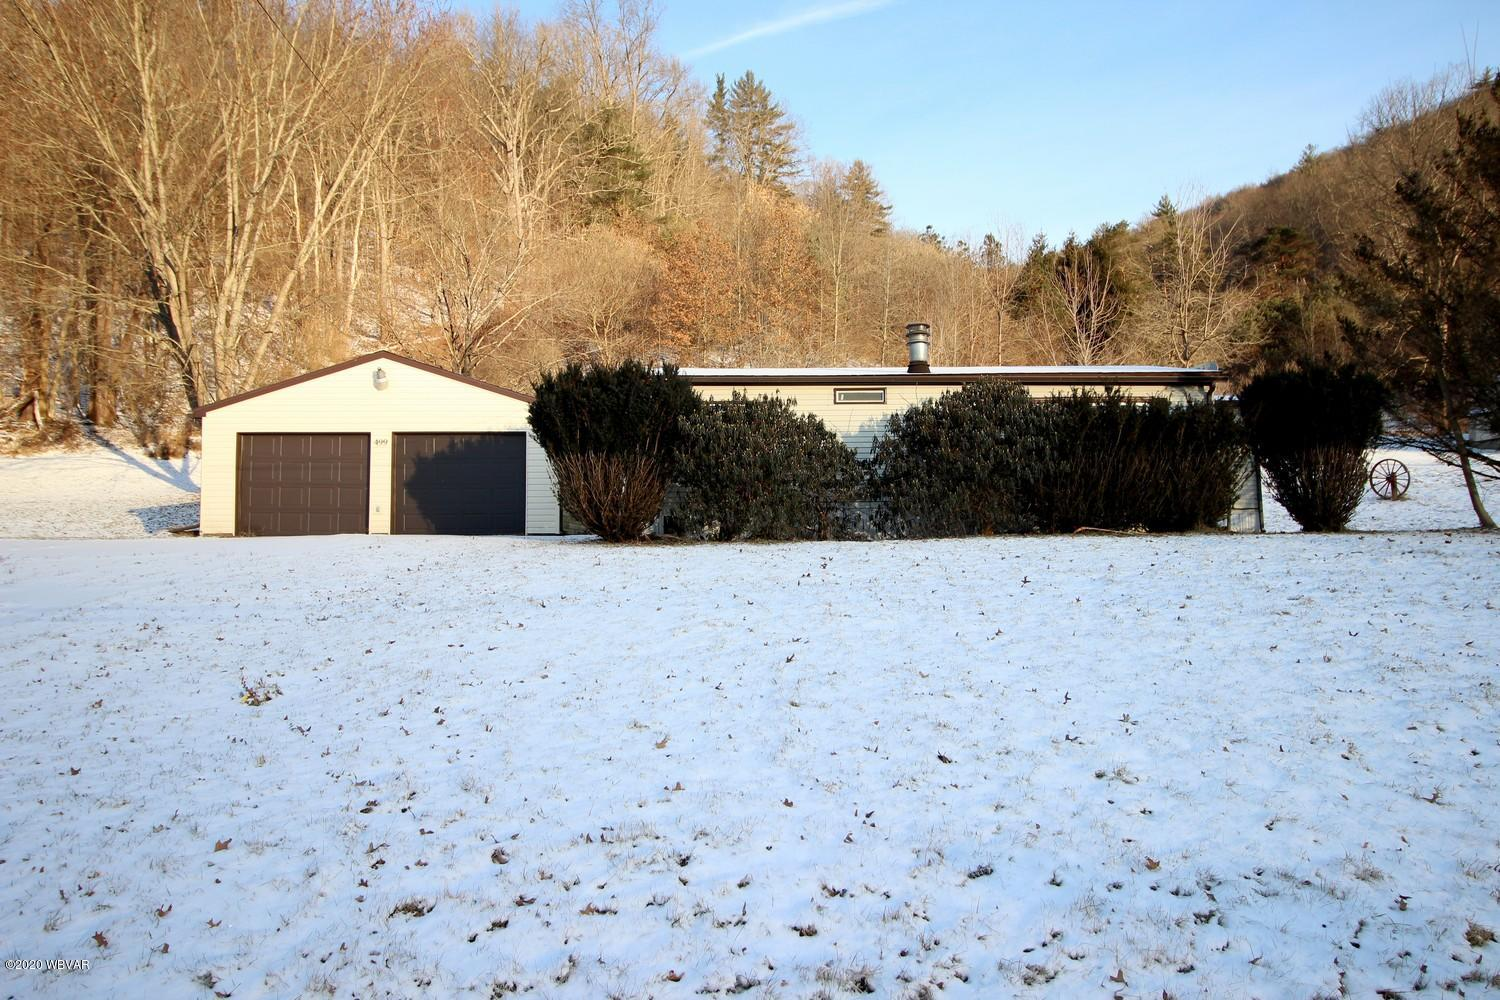 499 OLD WEST CREEK ROAD,Emporium,PA 15834,2 Bedrooms Bedrooms,2 BathroomsBathrooms,Residential,OLD WEST CREEK,WB-89400